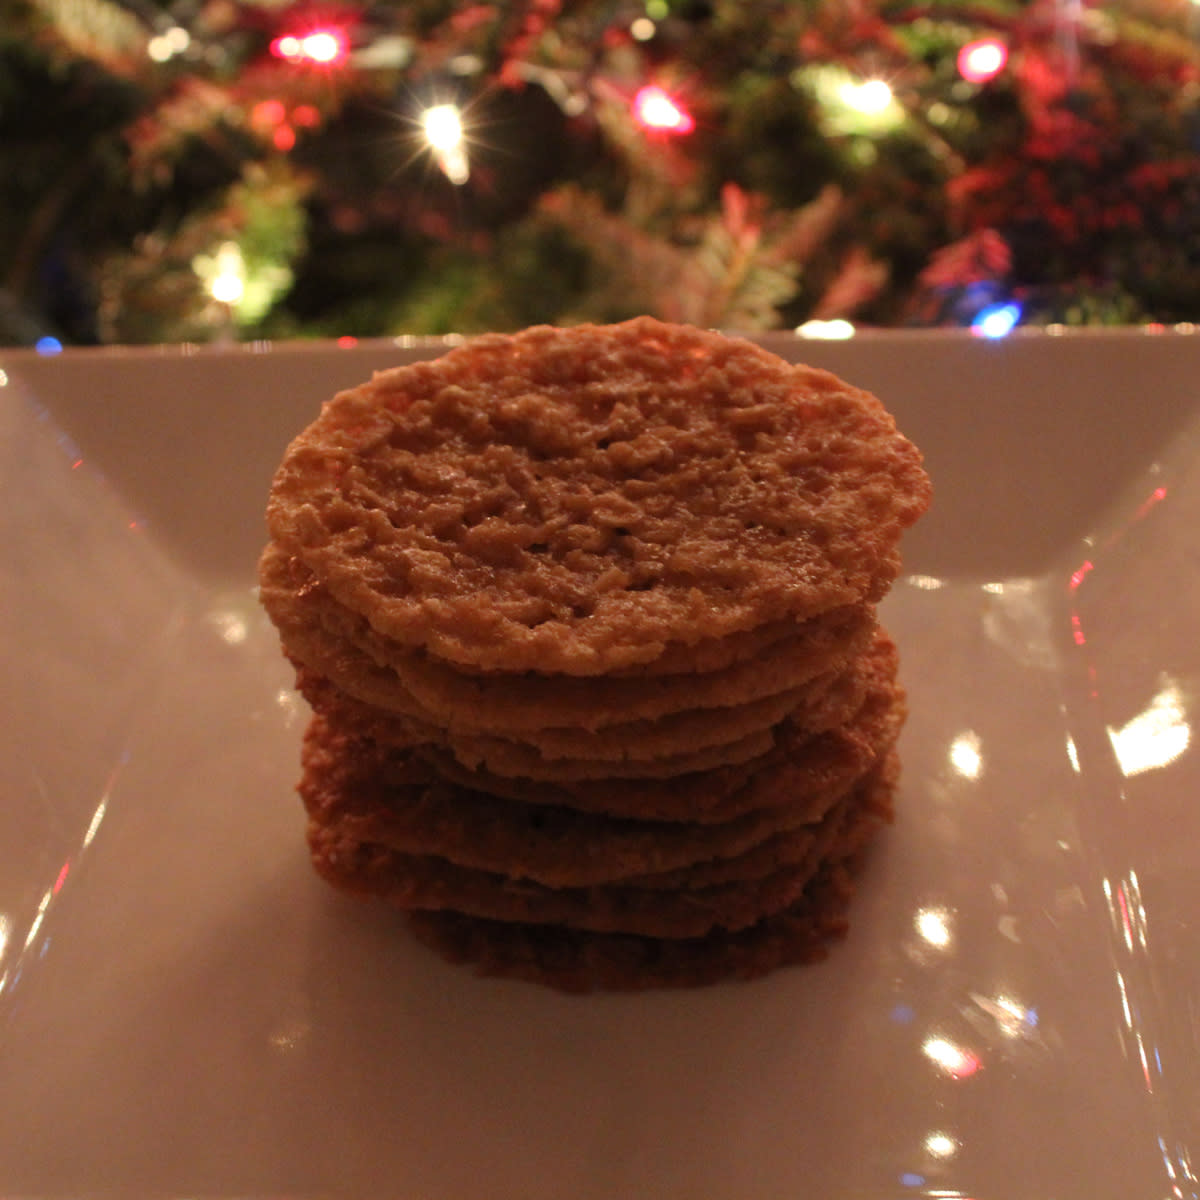 Kim Lilly Lace Cookies